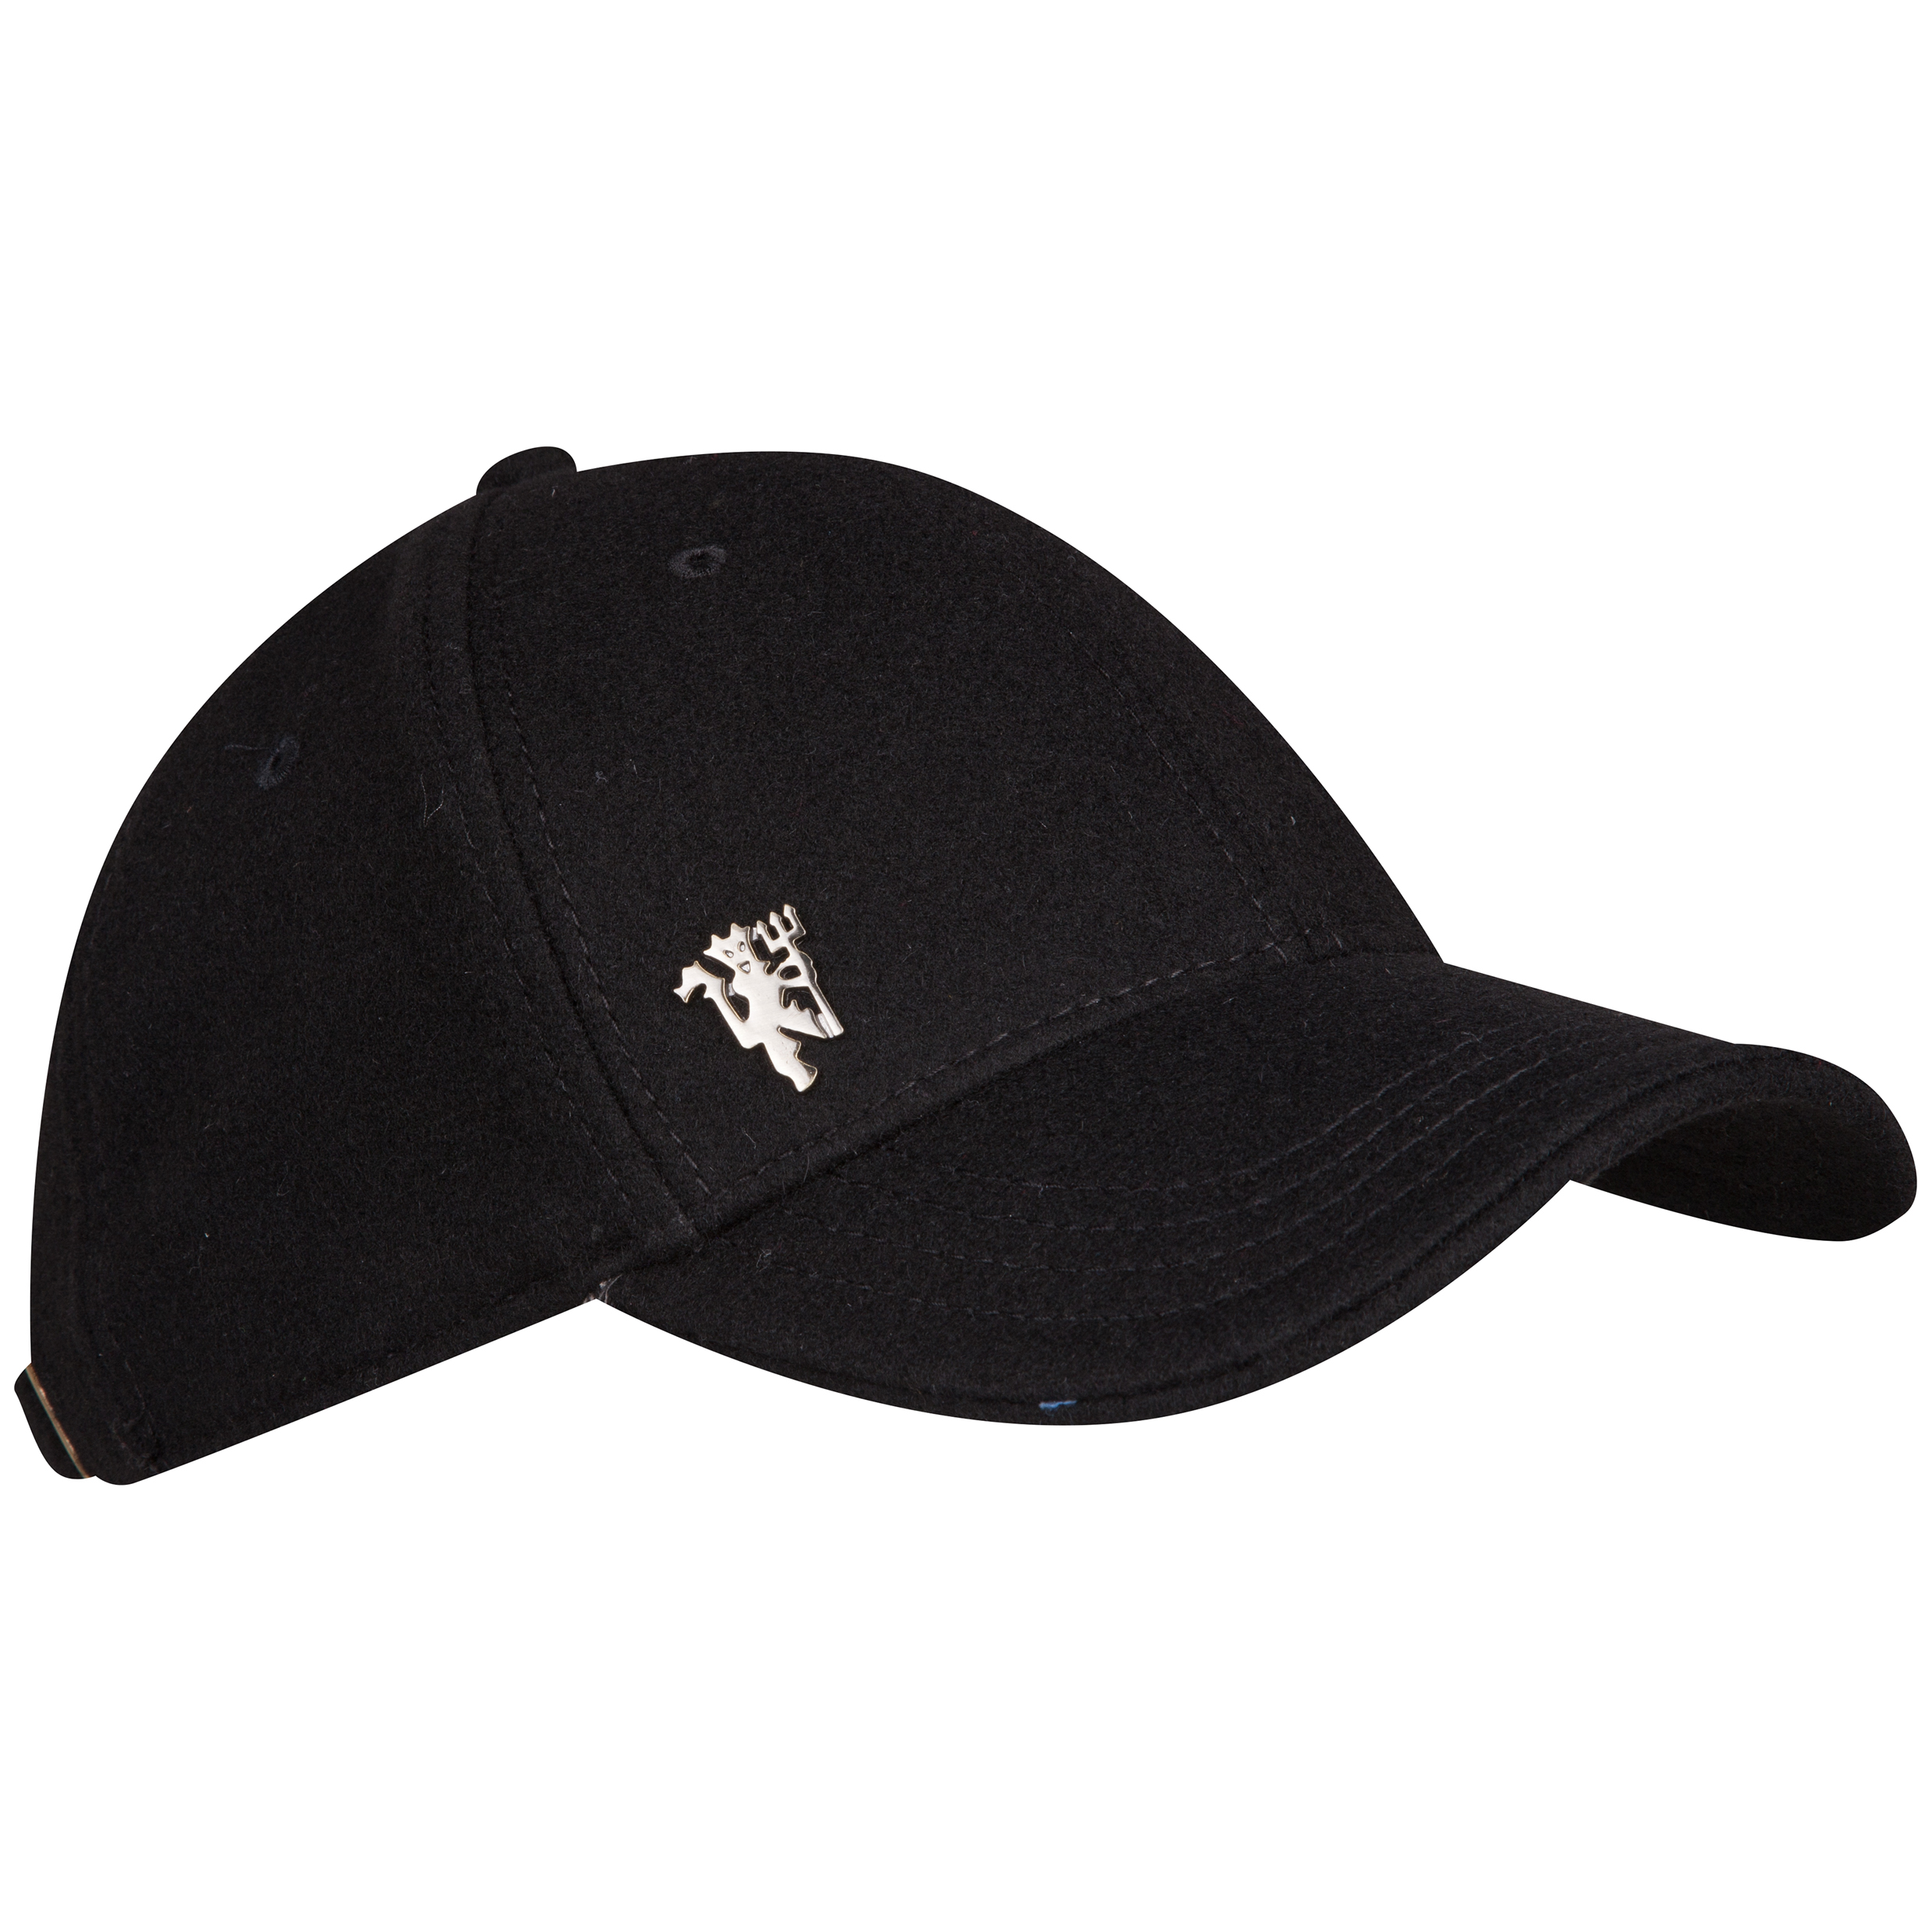 Manchester United Devil Melton Wool Cap Black